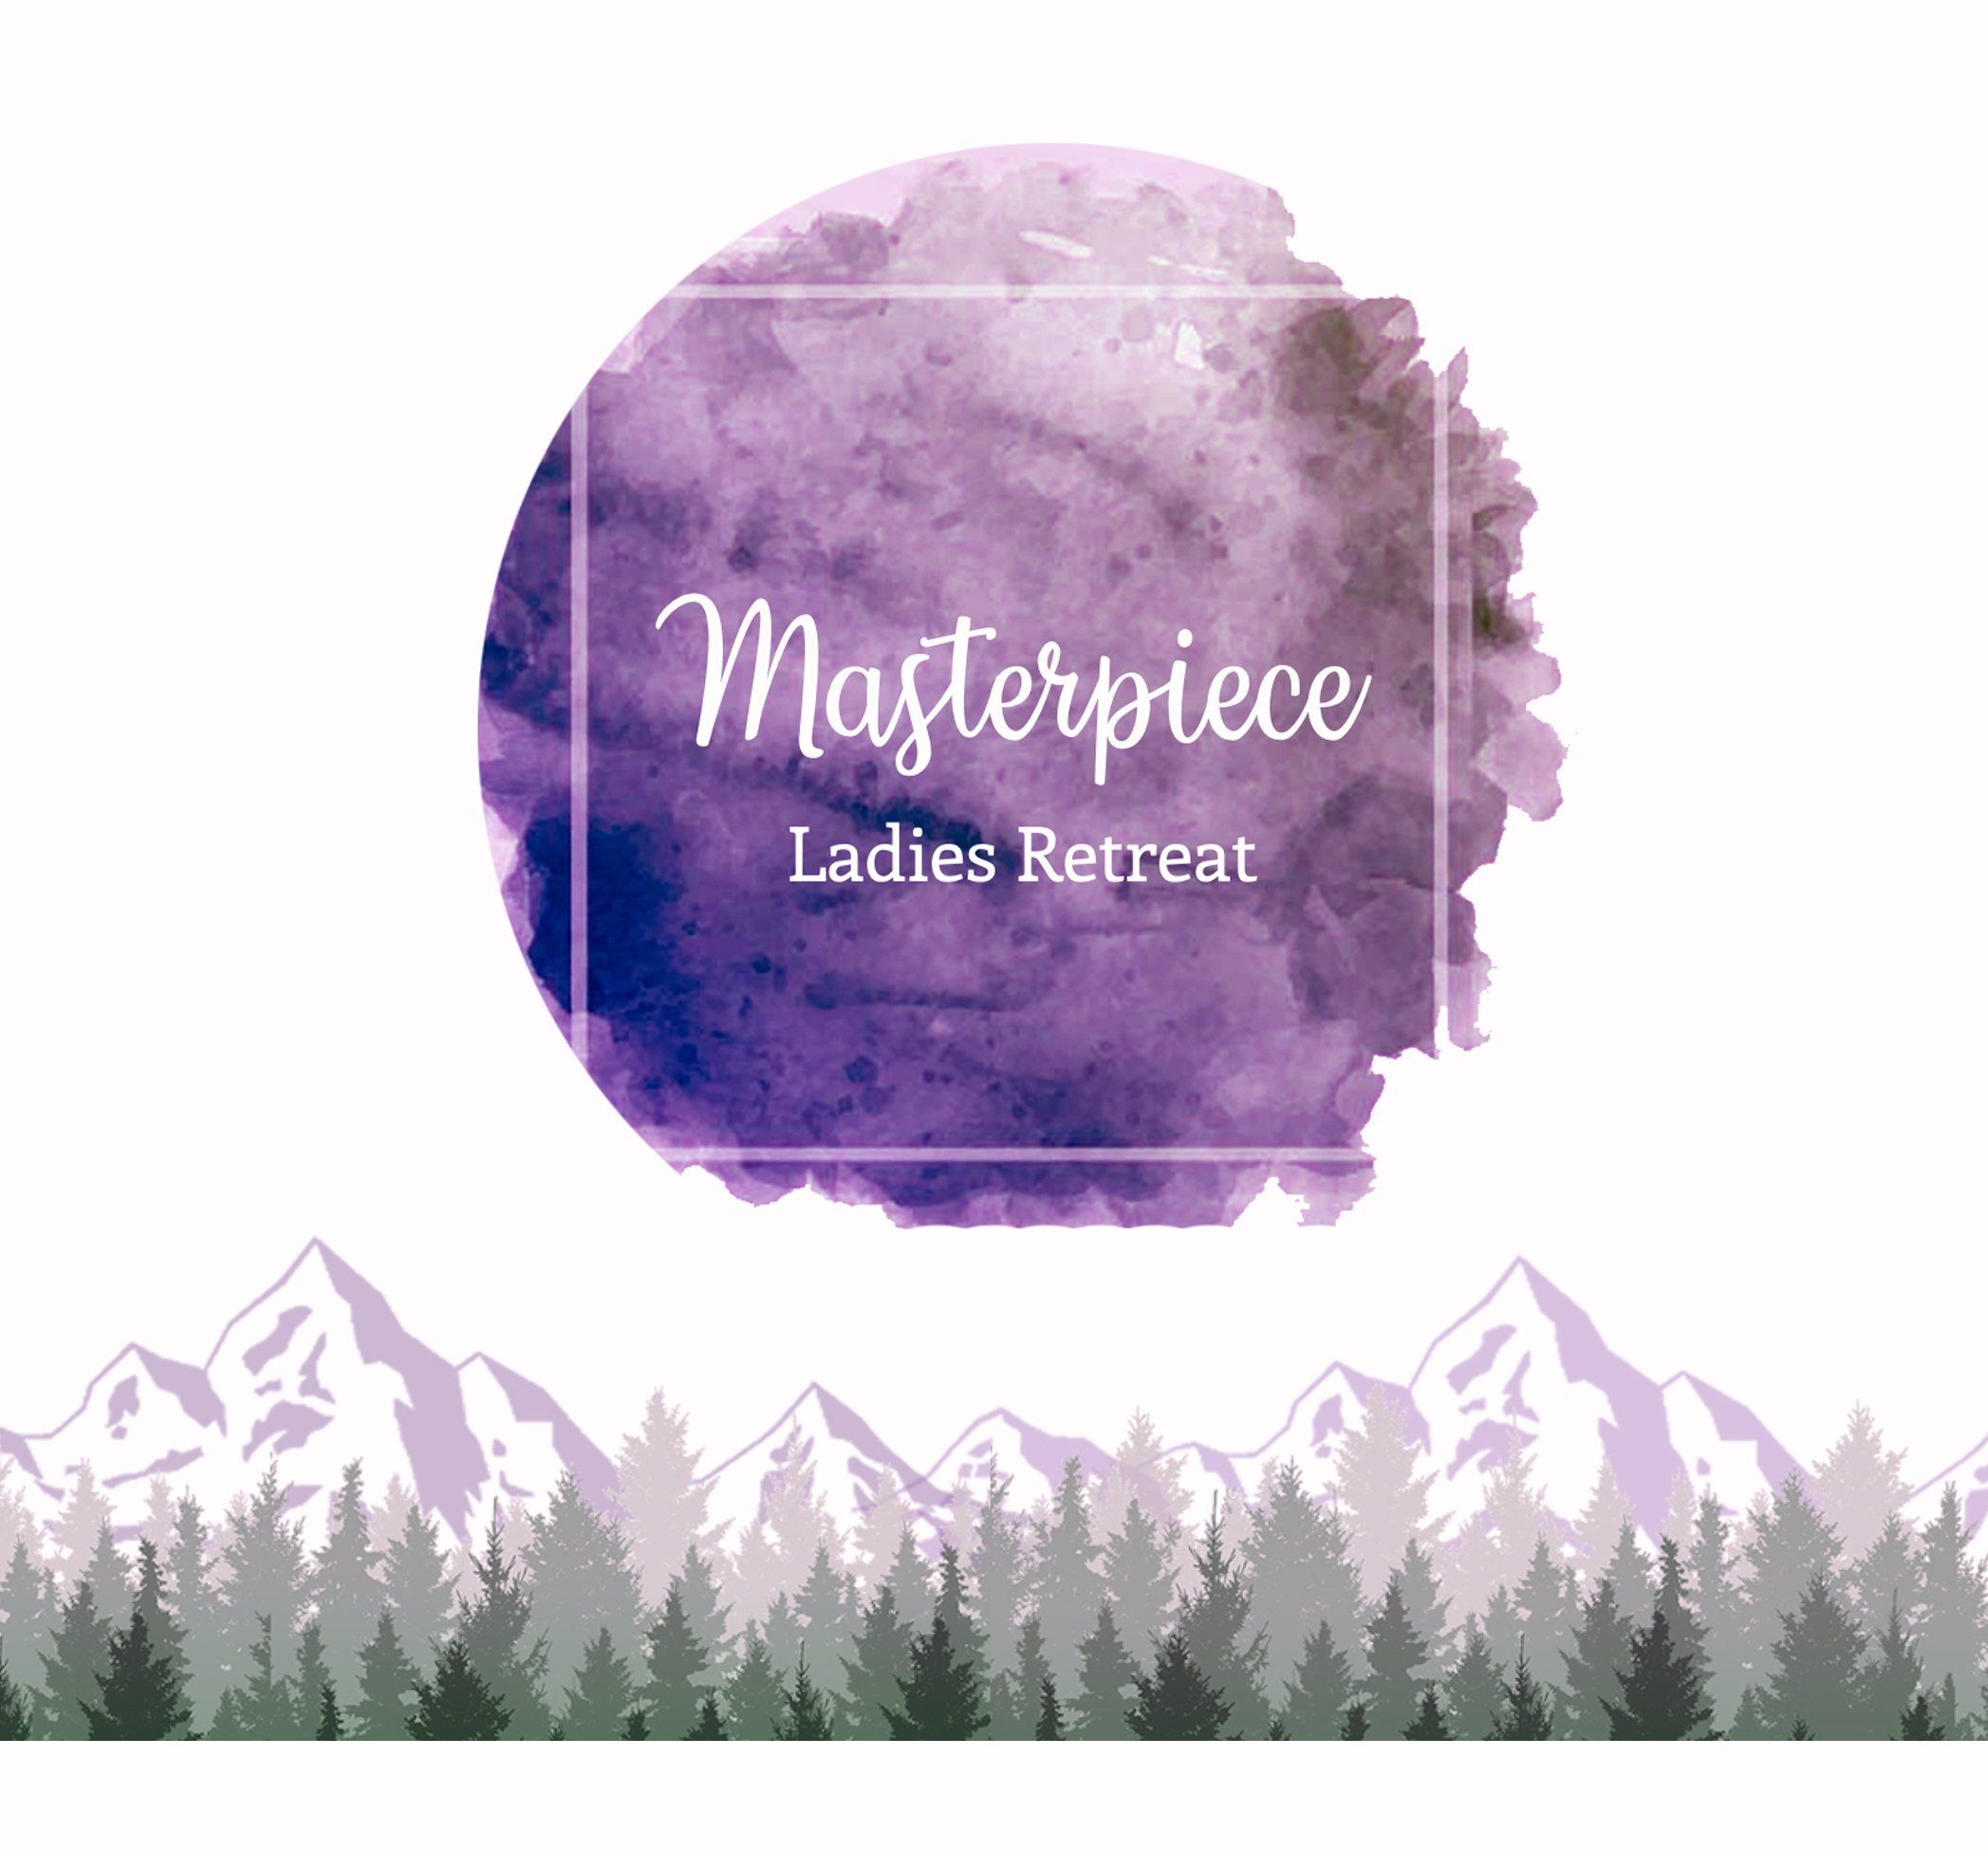 Purple circle graphic with mountain theme backdrop